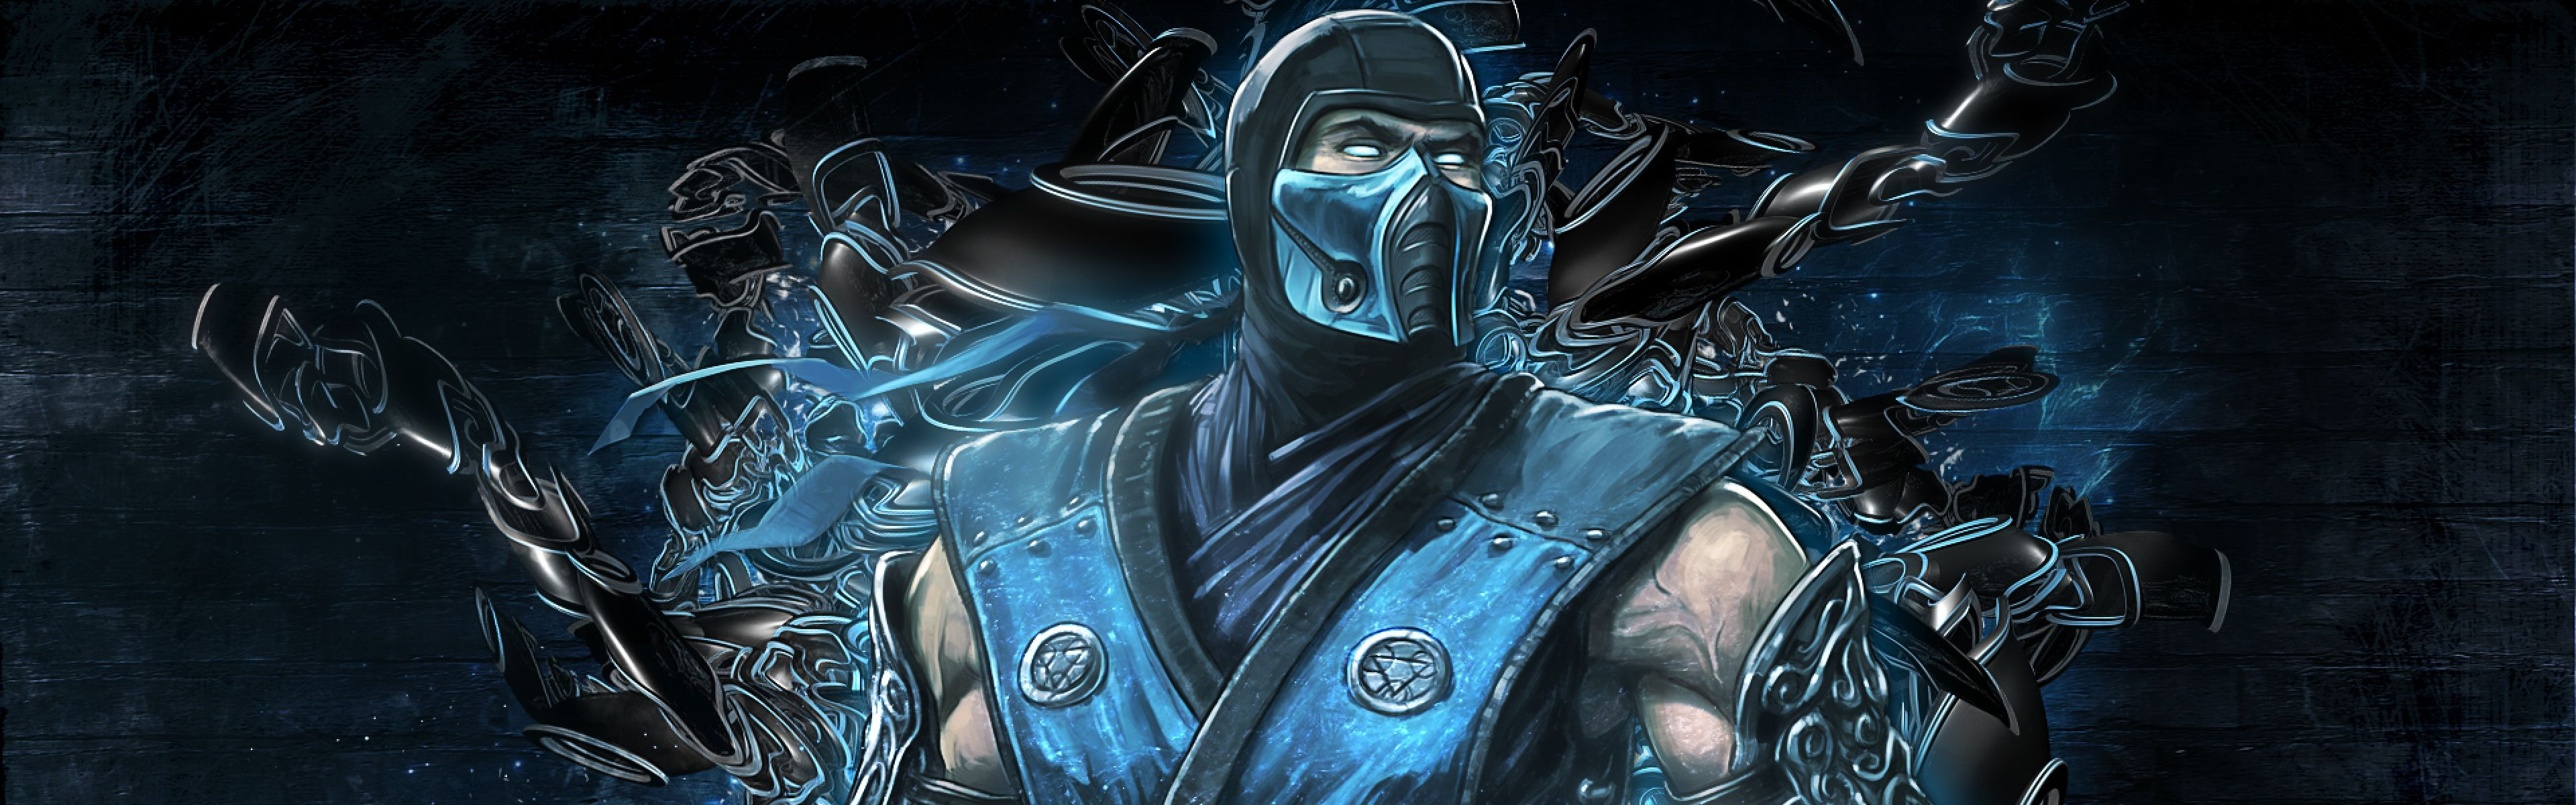 Mortal Kombat Sub Zero Wallpaper Find Best Latest In HD